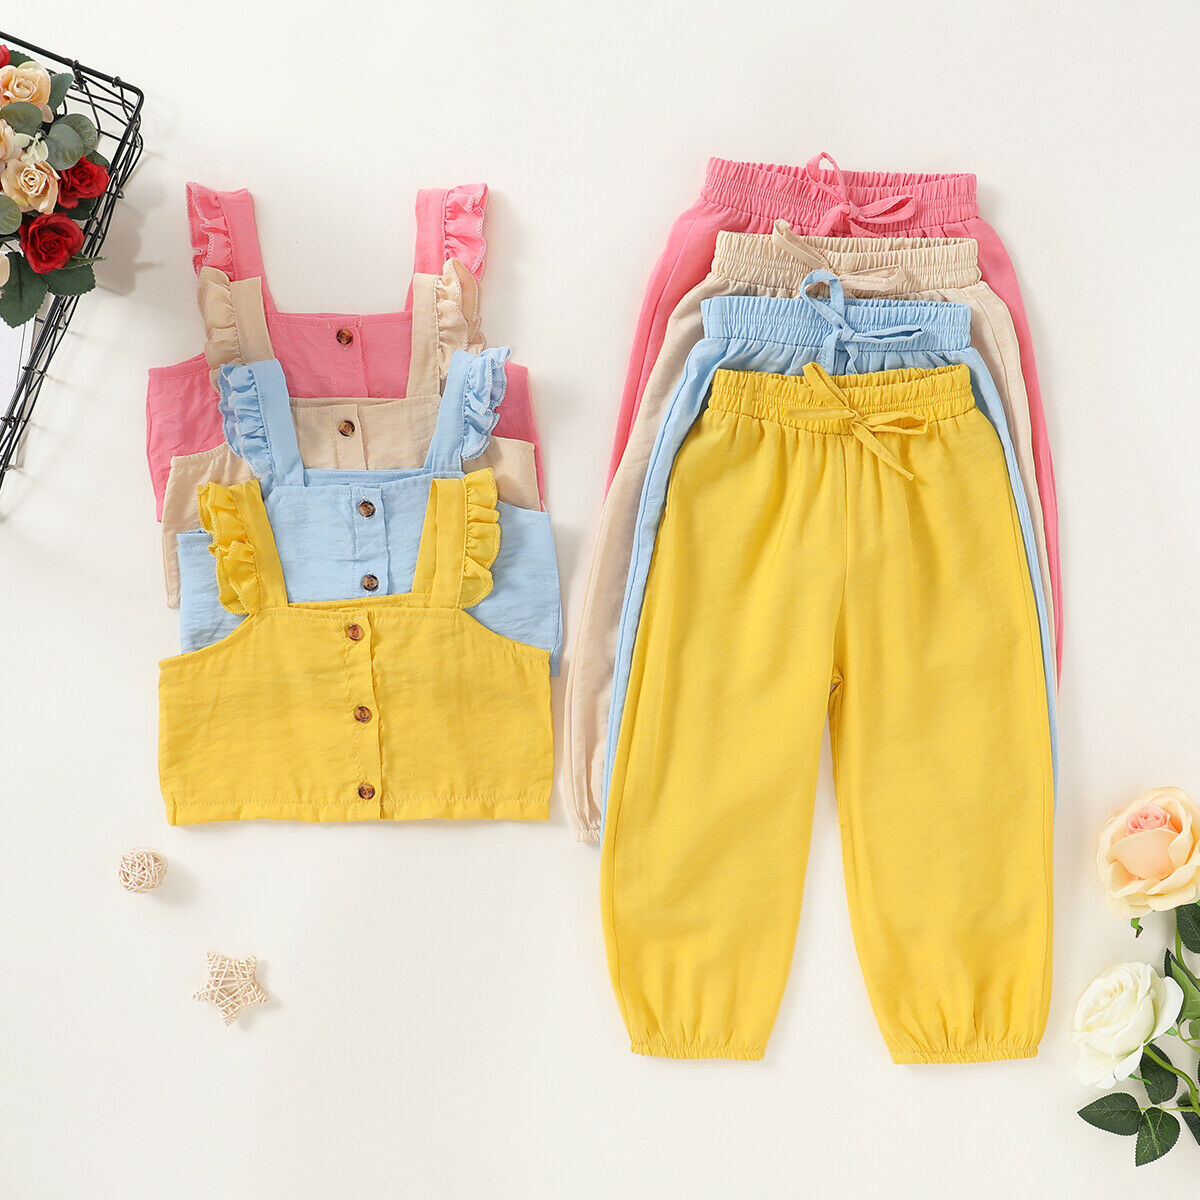 Pudcoco Toddler Baby Girl Clothes Solid Color Sleeveless Strap Crop Button Tops Long Pants 2Pcs Outfits Clothes Tracksuit